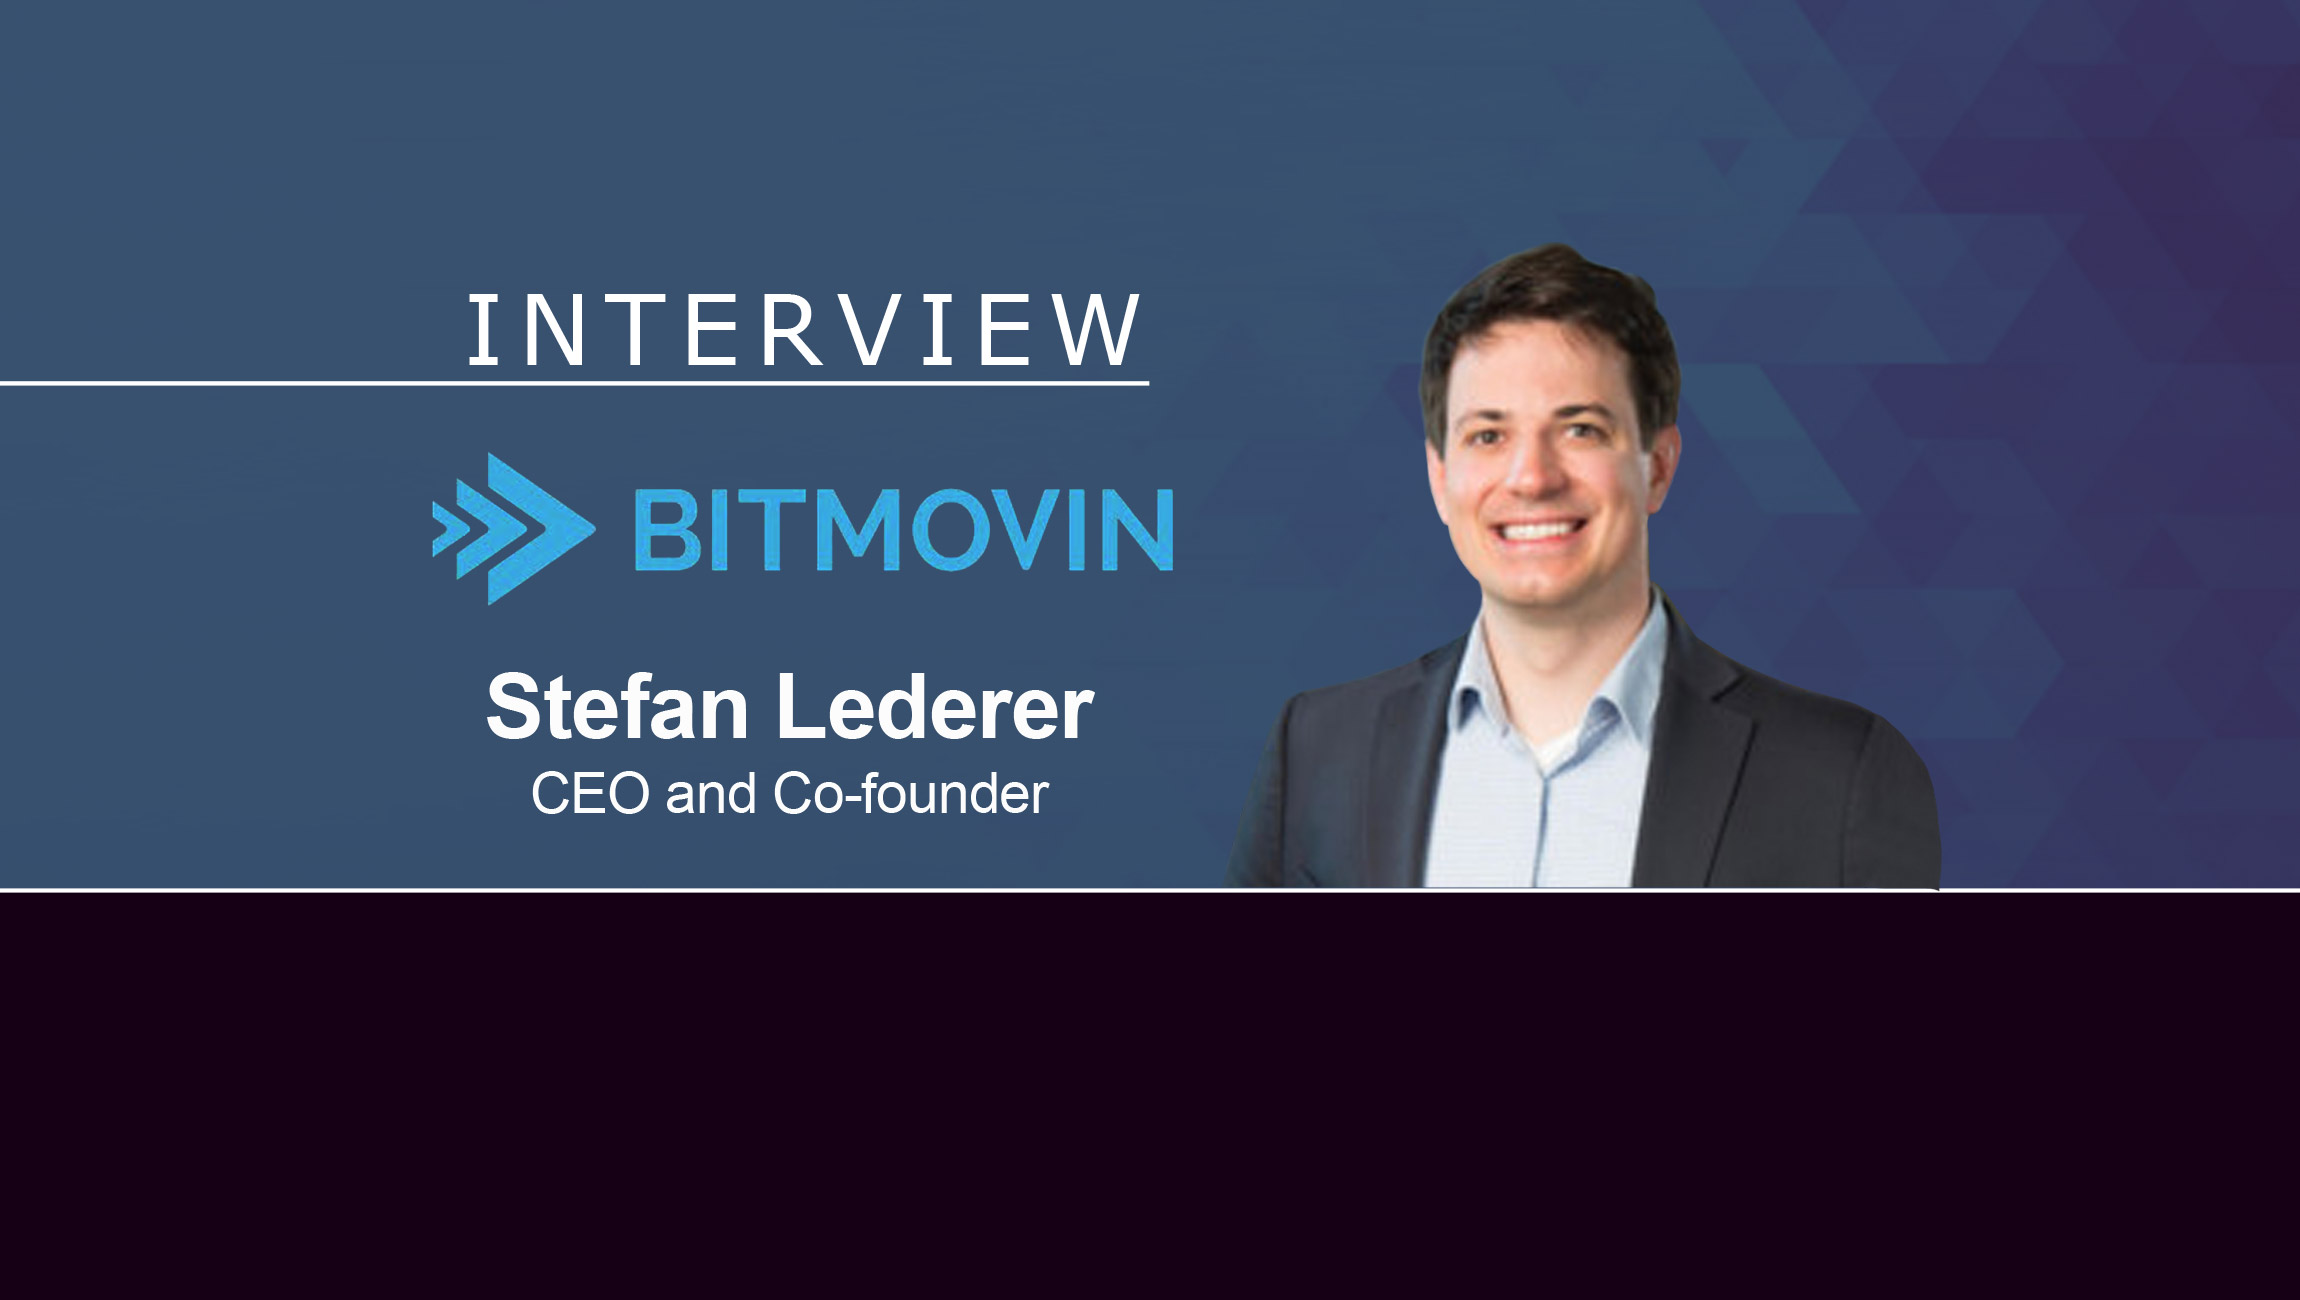 MarTech Interview with Stefan Lederer, CEO and Co-founder at Bitmovin